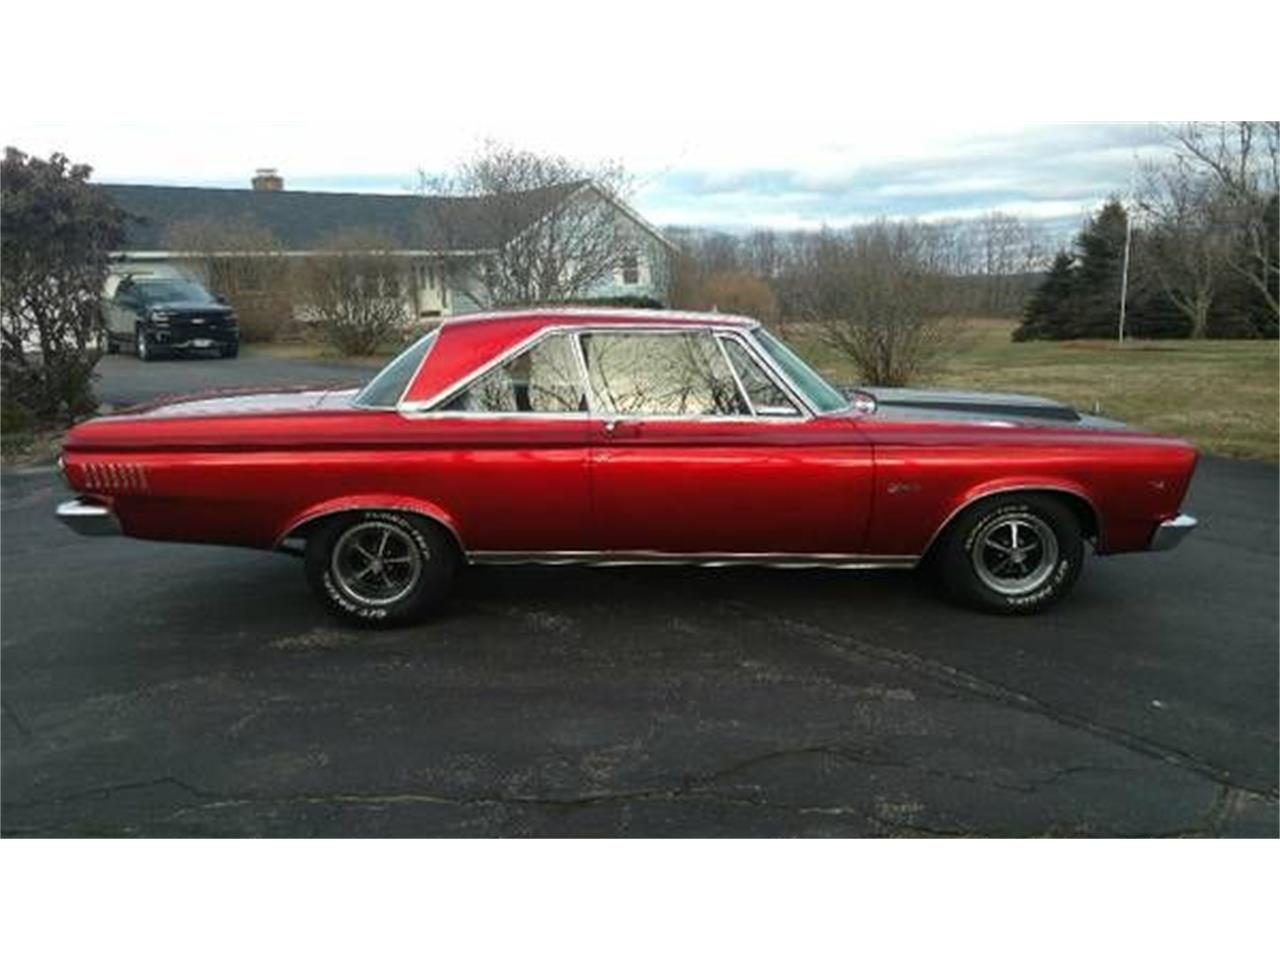 1965 plymouth satellite for sale in cadillac mi classiccarsbay com 1965 plymouth satellite for sale in